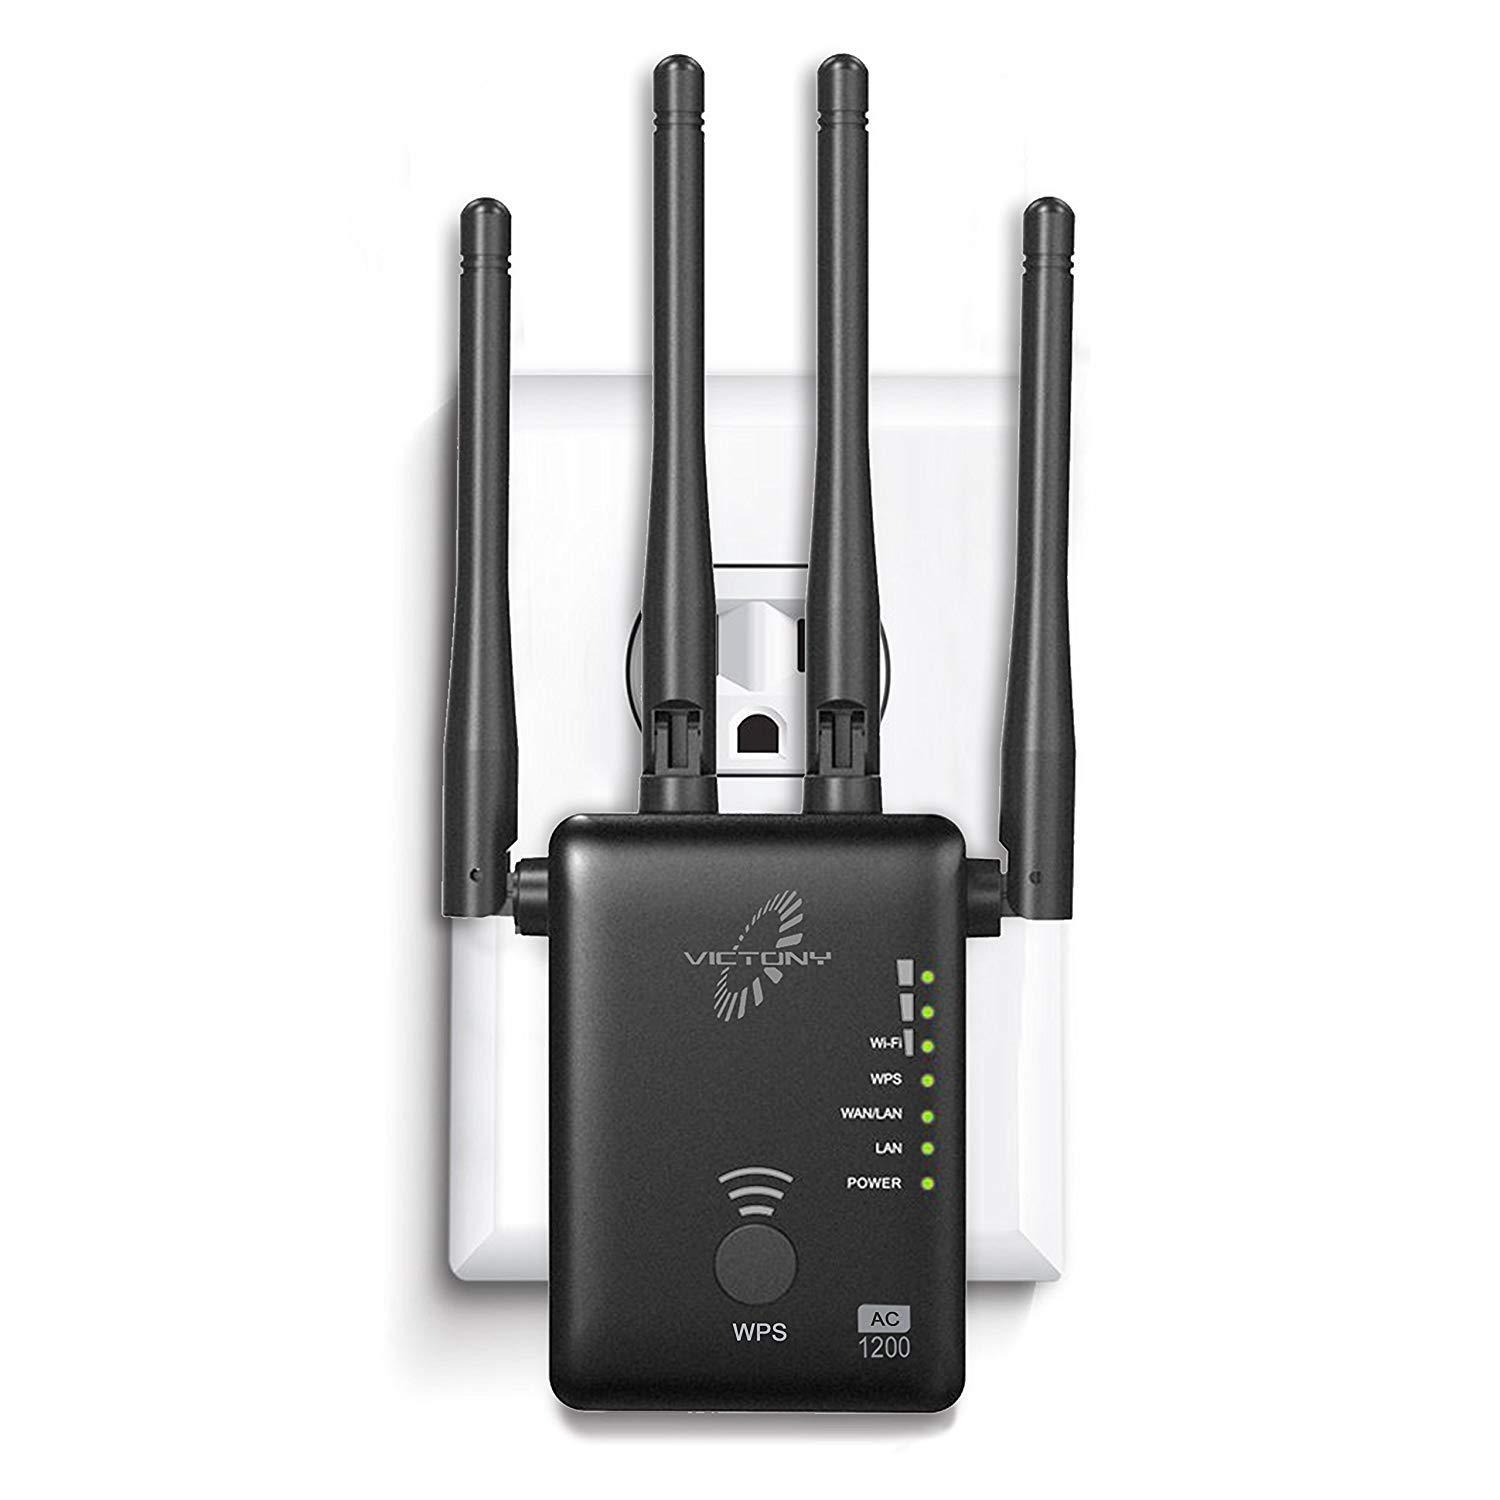 VICTONY WiFi Ranger Extender with High Gain Dual Band Antennas Wireless Network Extender 2.4GHz Speed up to 300Mbs WiFi Repeater , Supports Repeater/Access Point/Router Mode